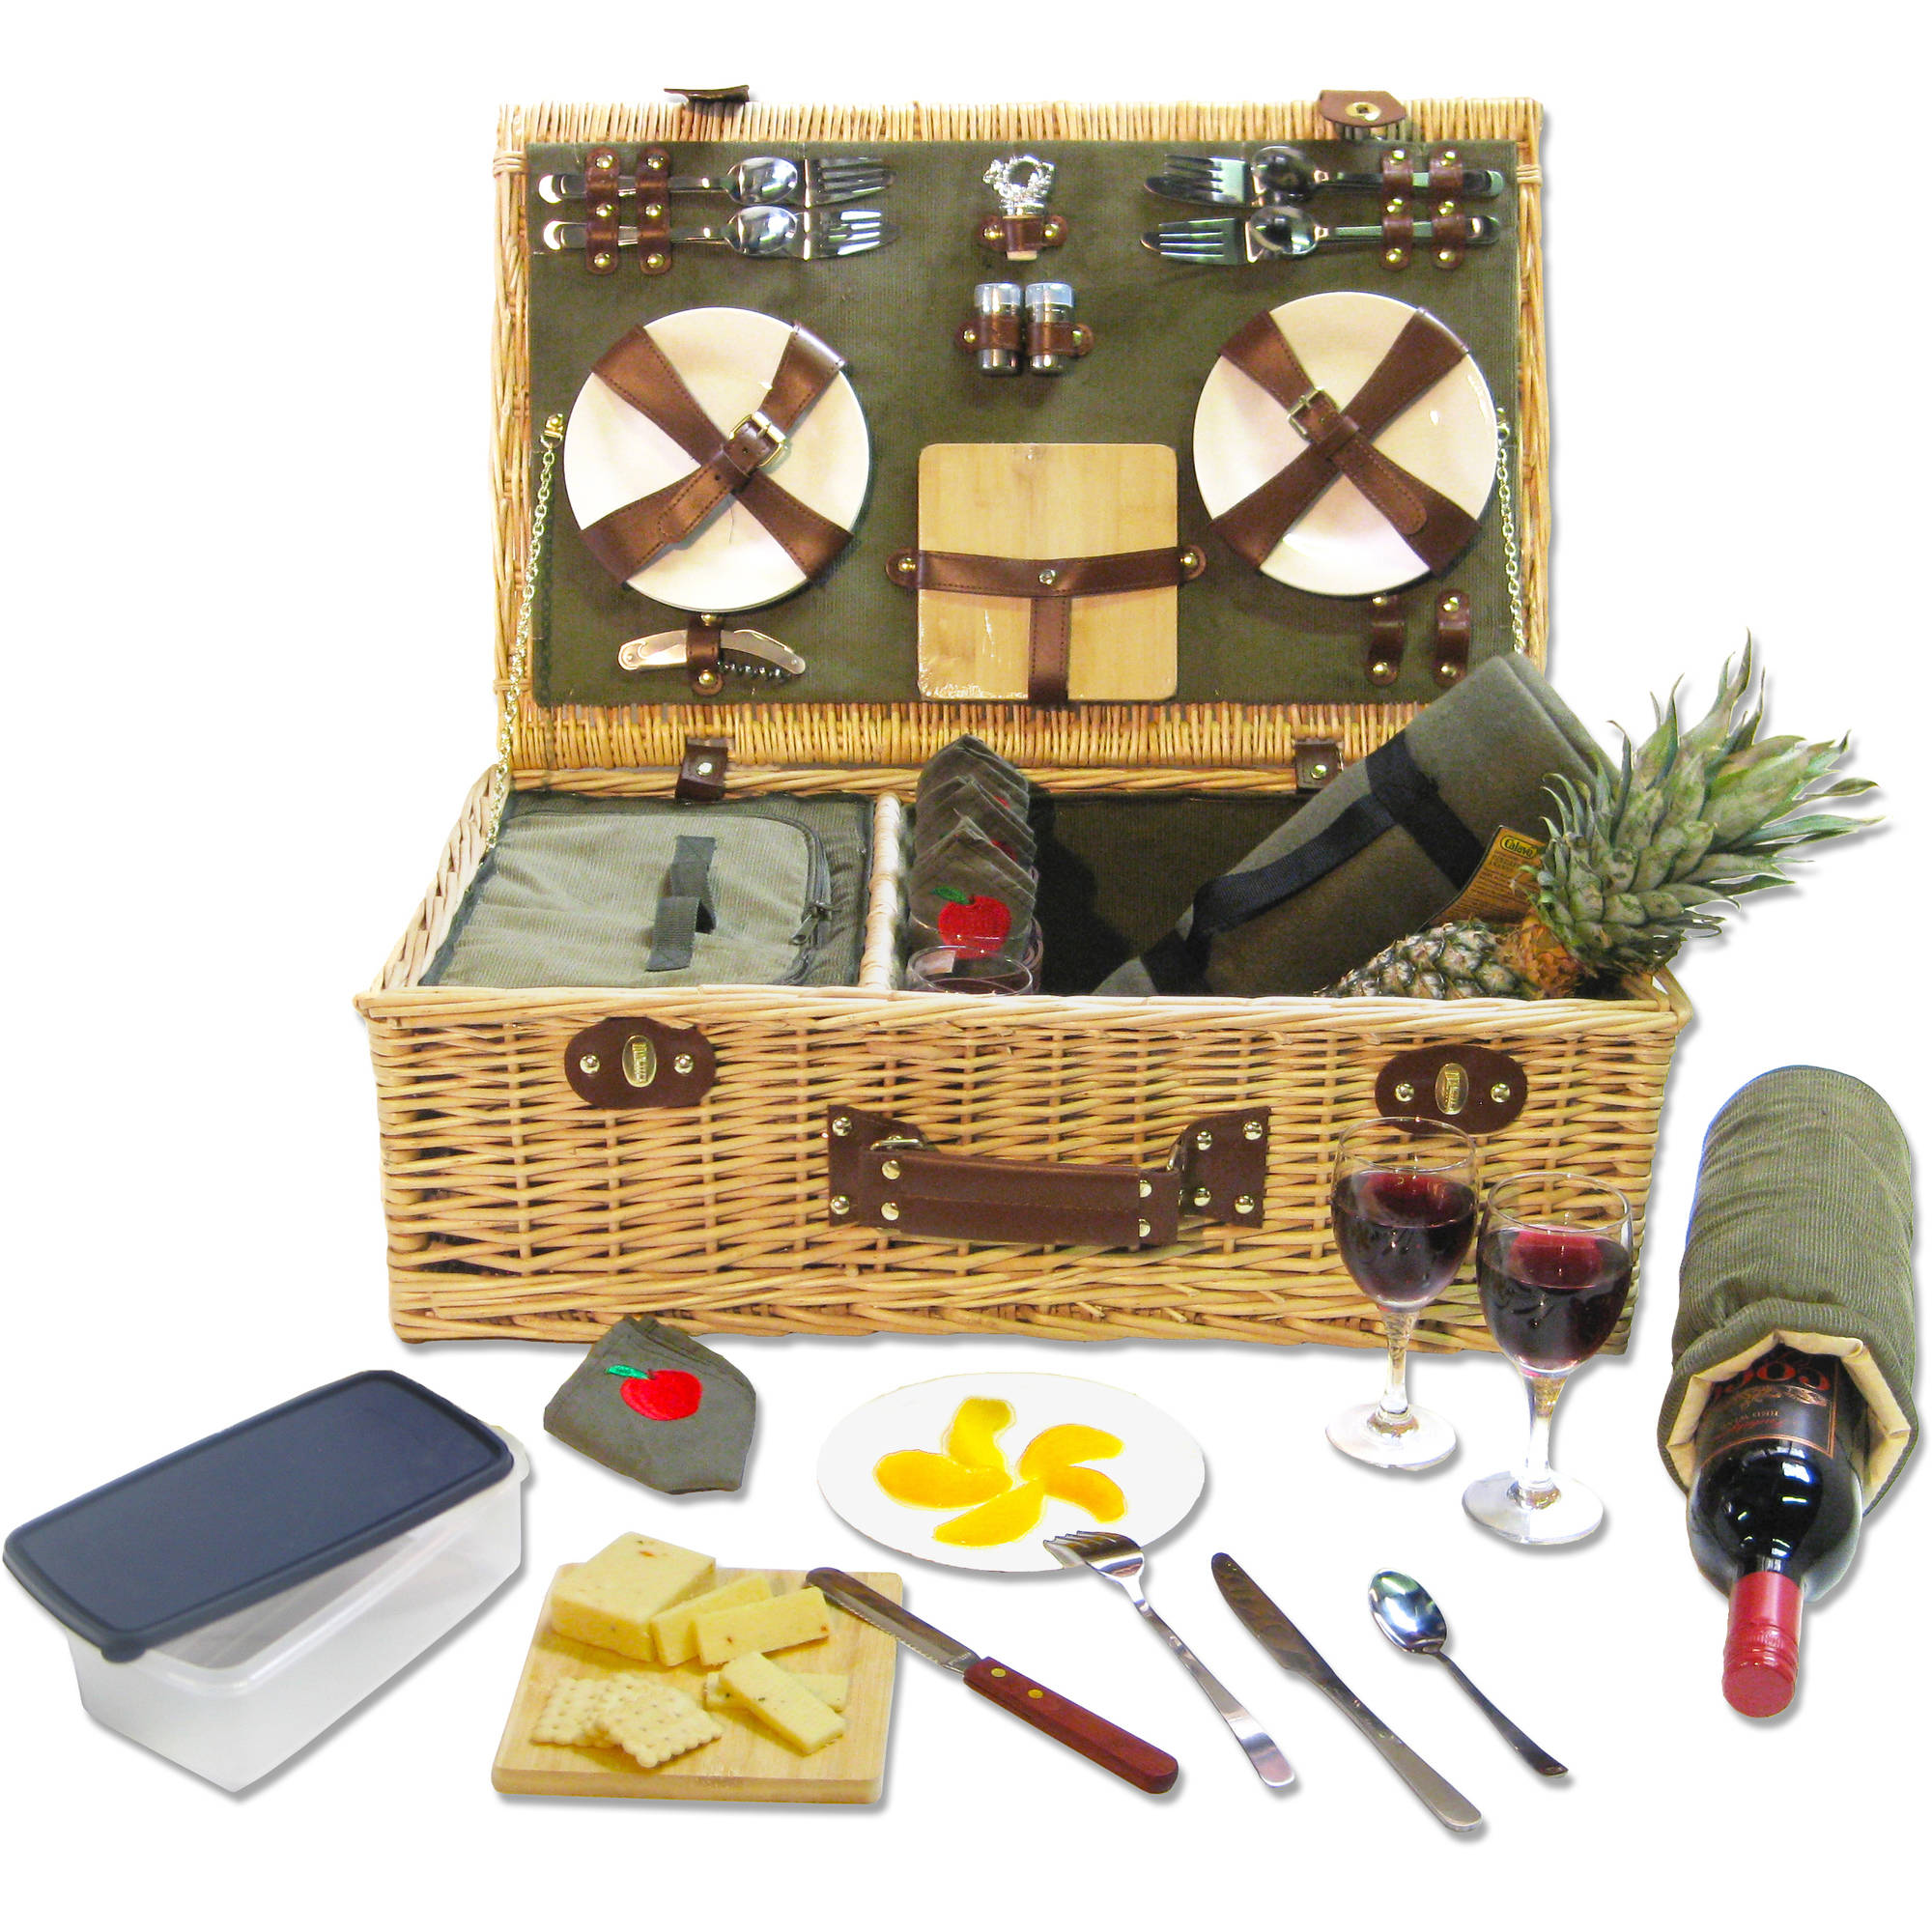 Picnic Pack SGI-WB101 Willow Picnic Basket for 4, Olive Green by Picnic Pack